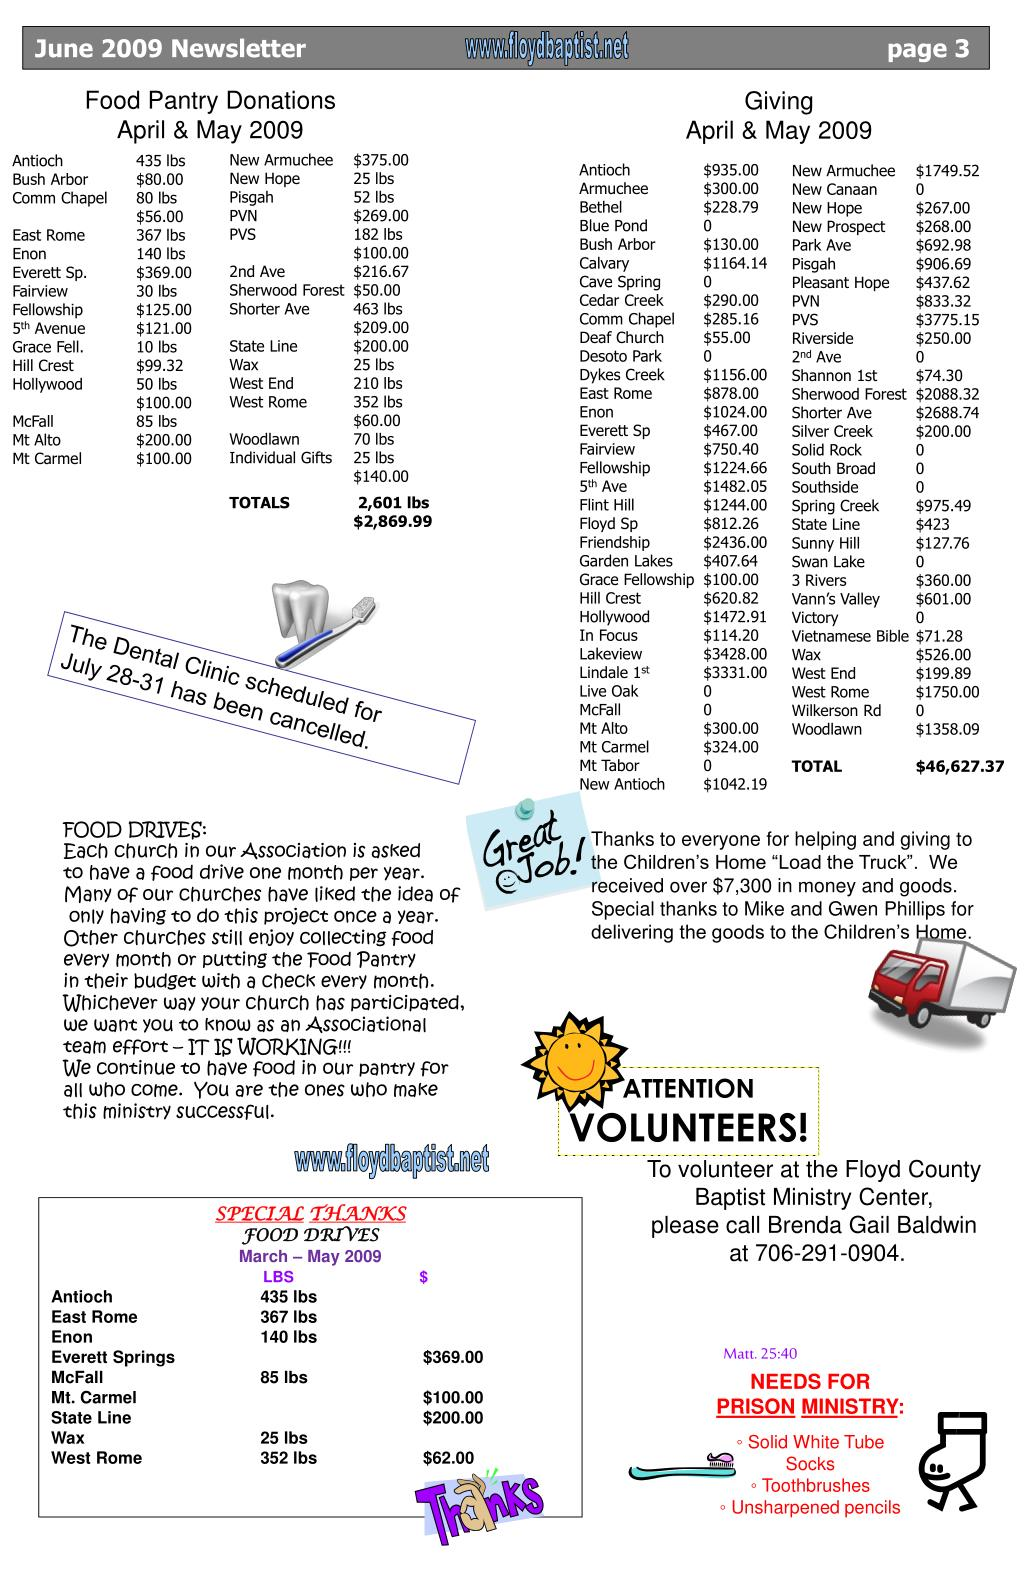 June 2009 Newsletter                                                                  page 3